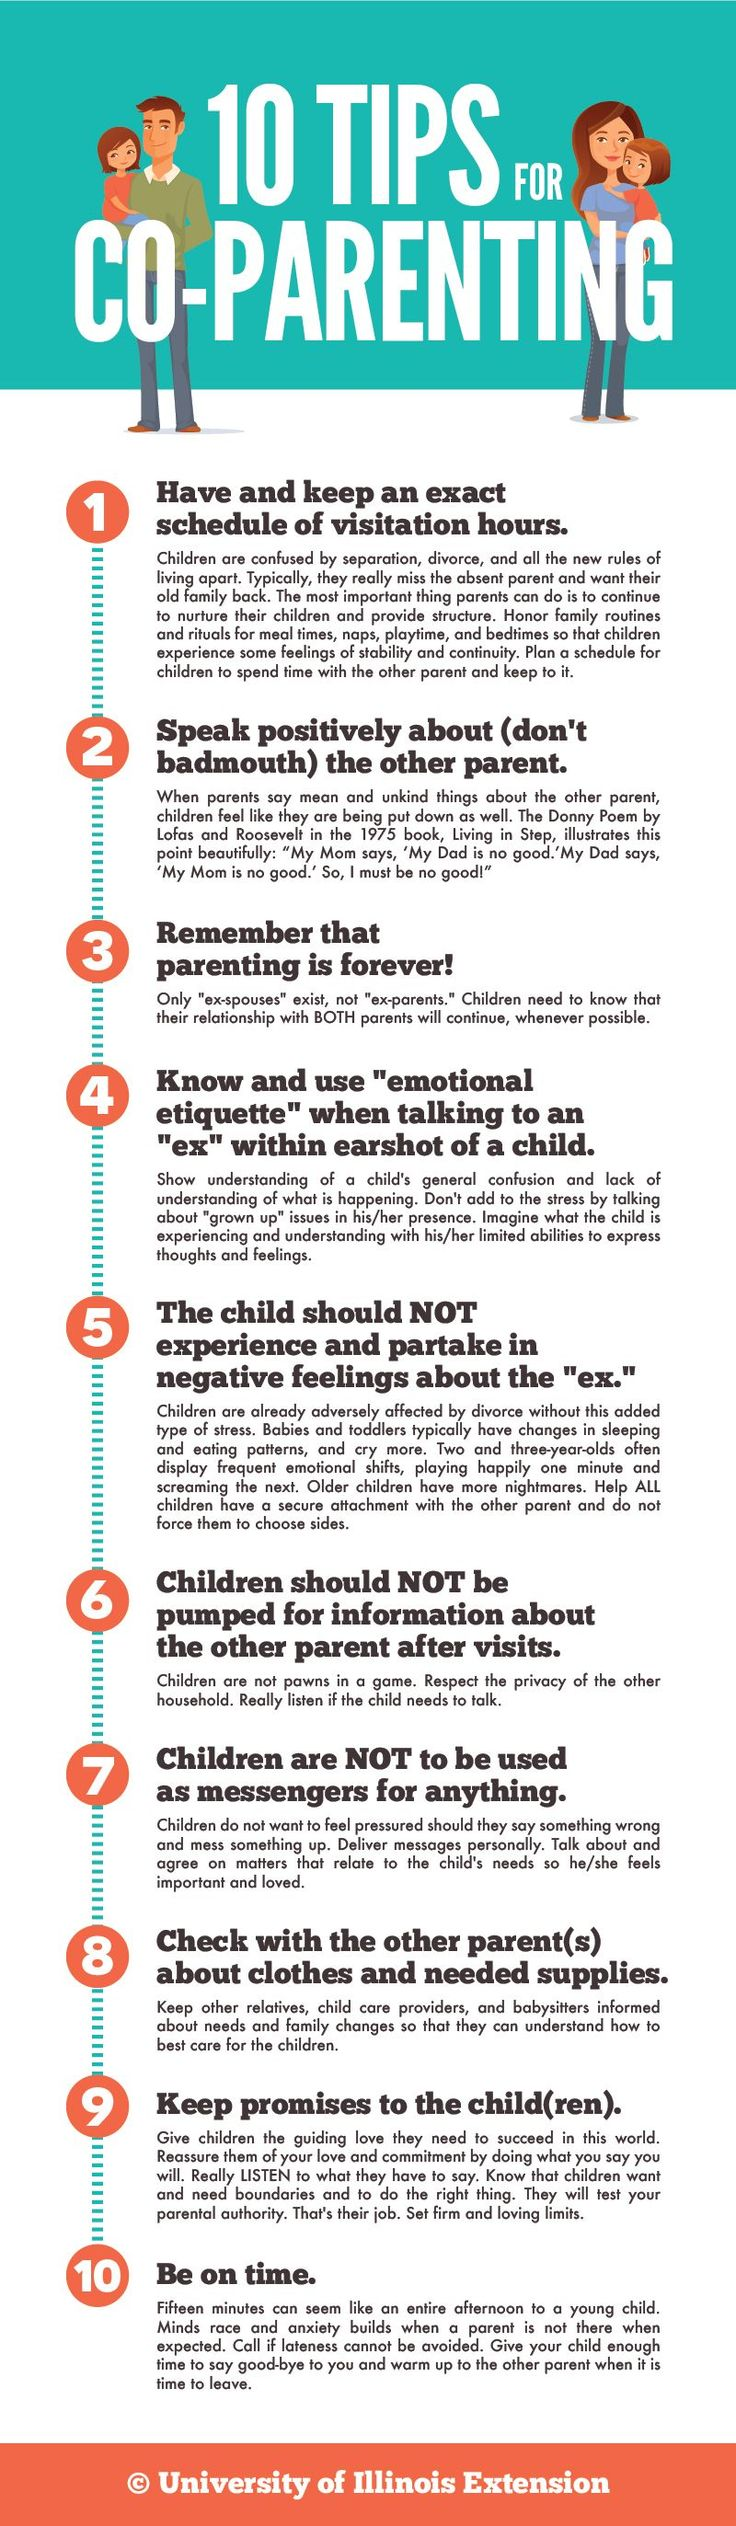 best single parenting ideas single parent  10 tips for co parenting divorce is always an tricky transition time for kids